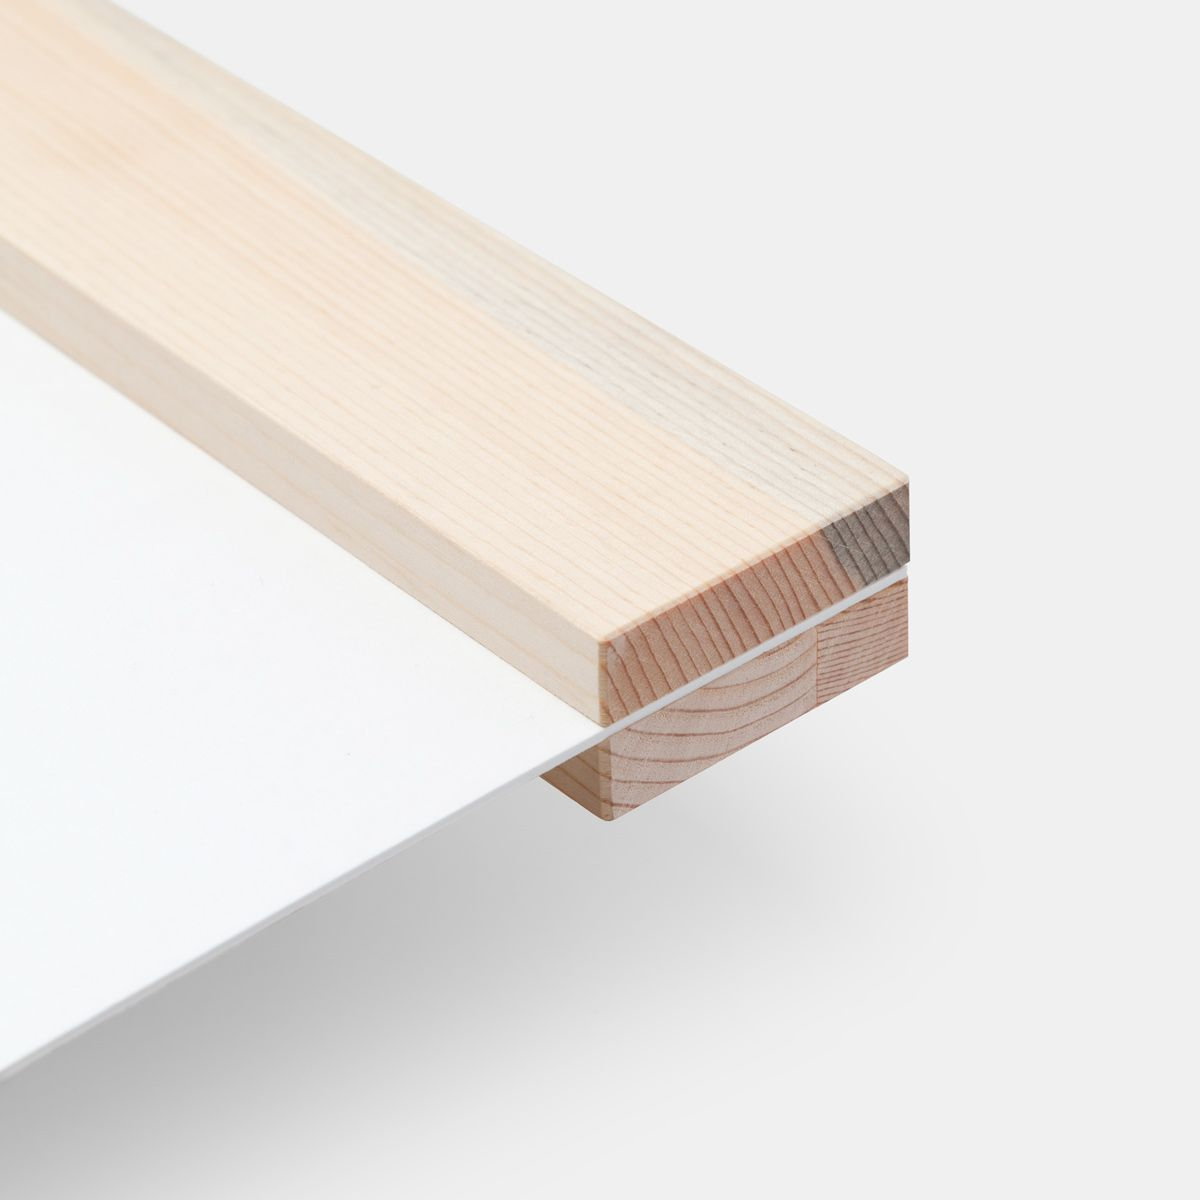 wood photo hanger 2.jpg